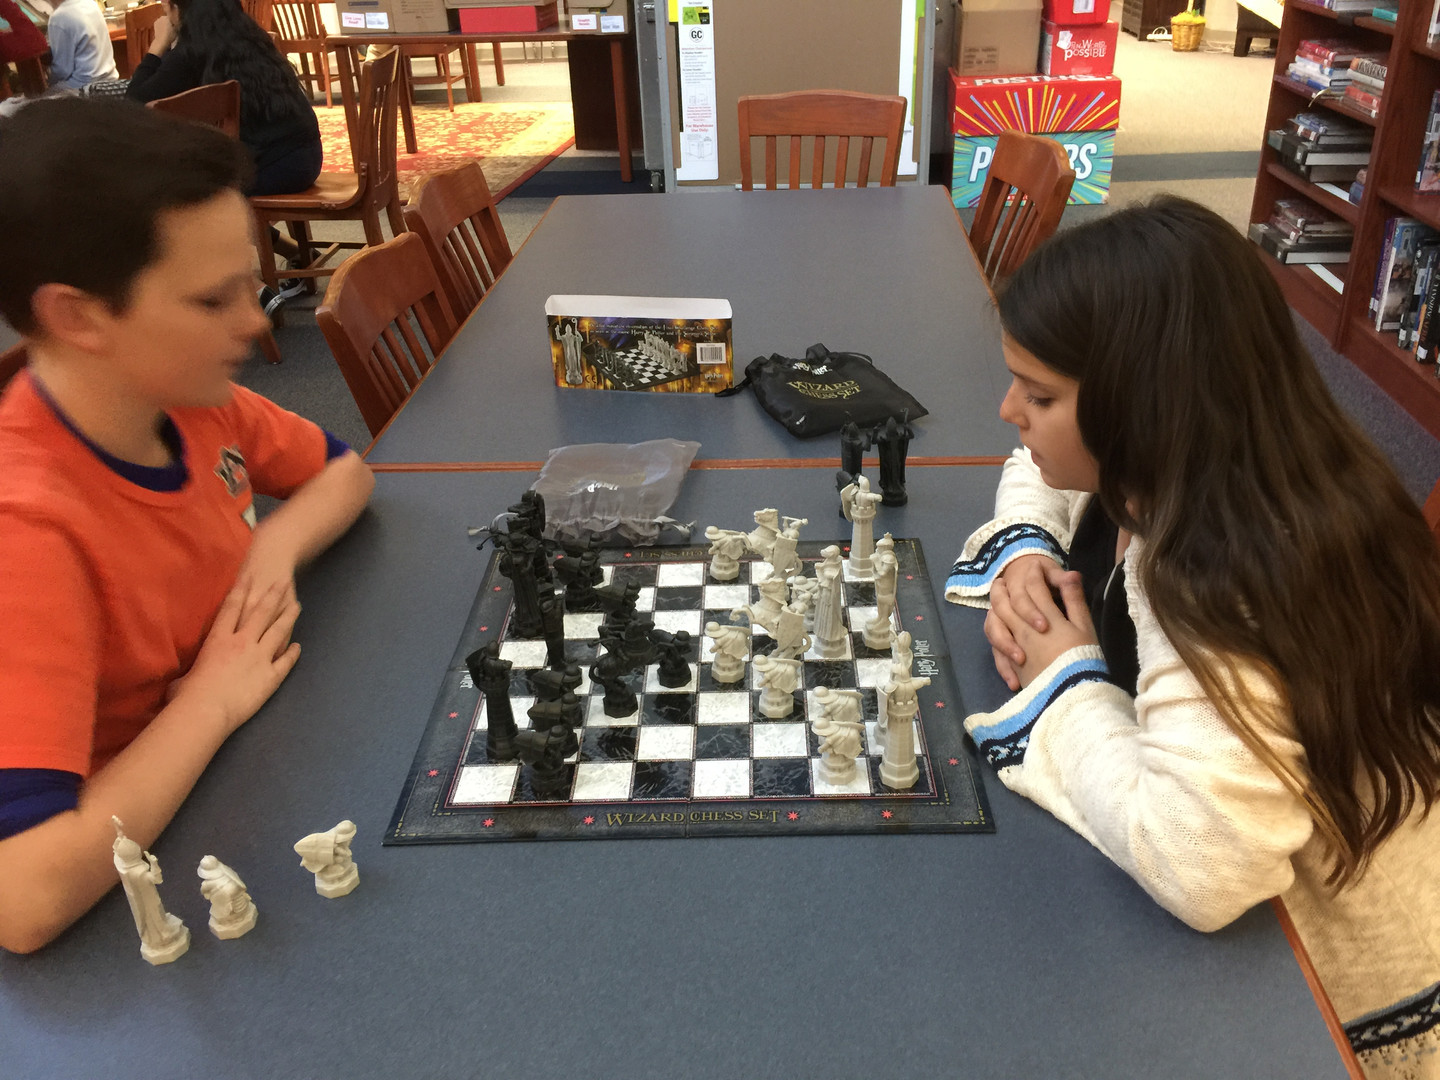 Strategizing with Chess